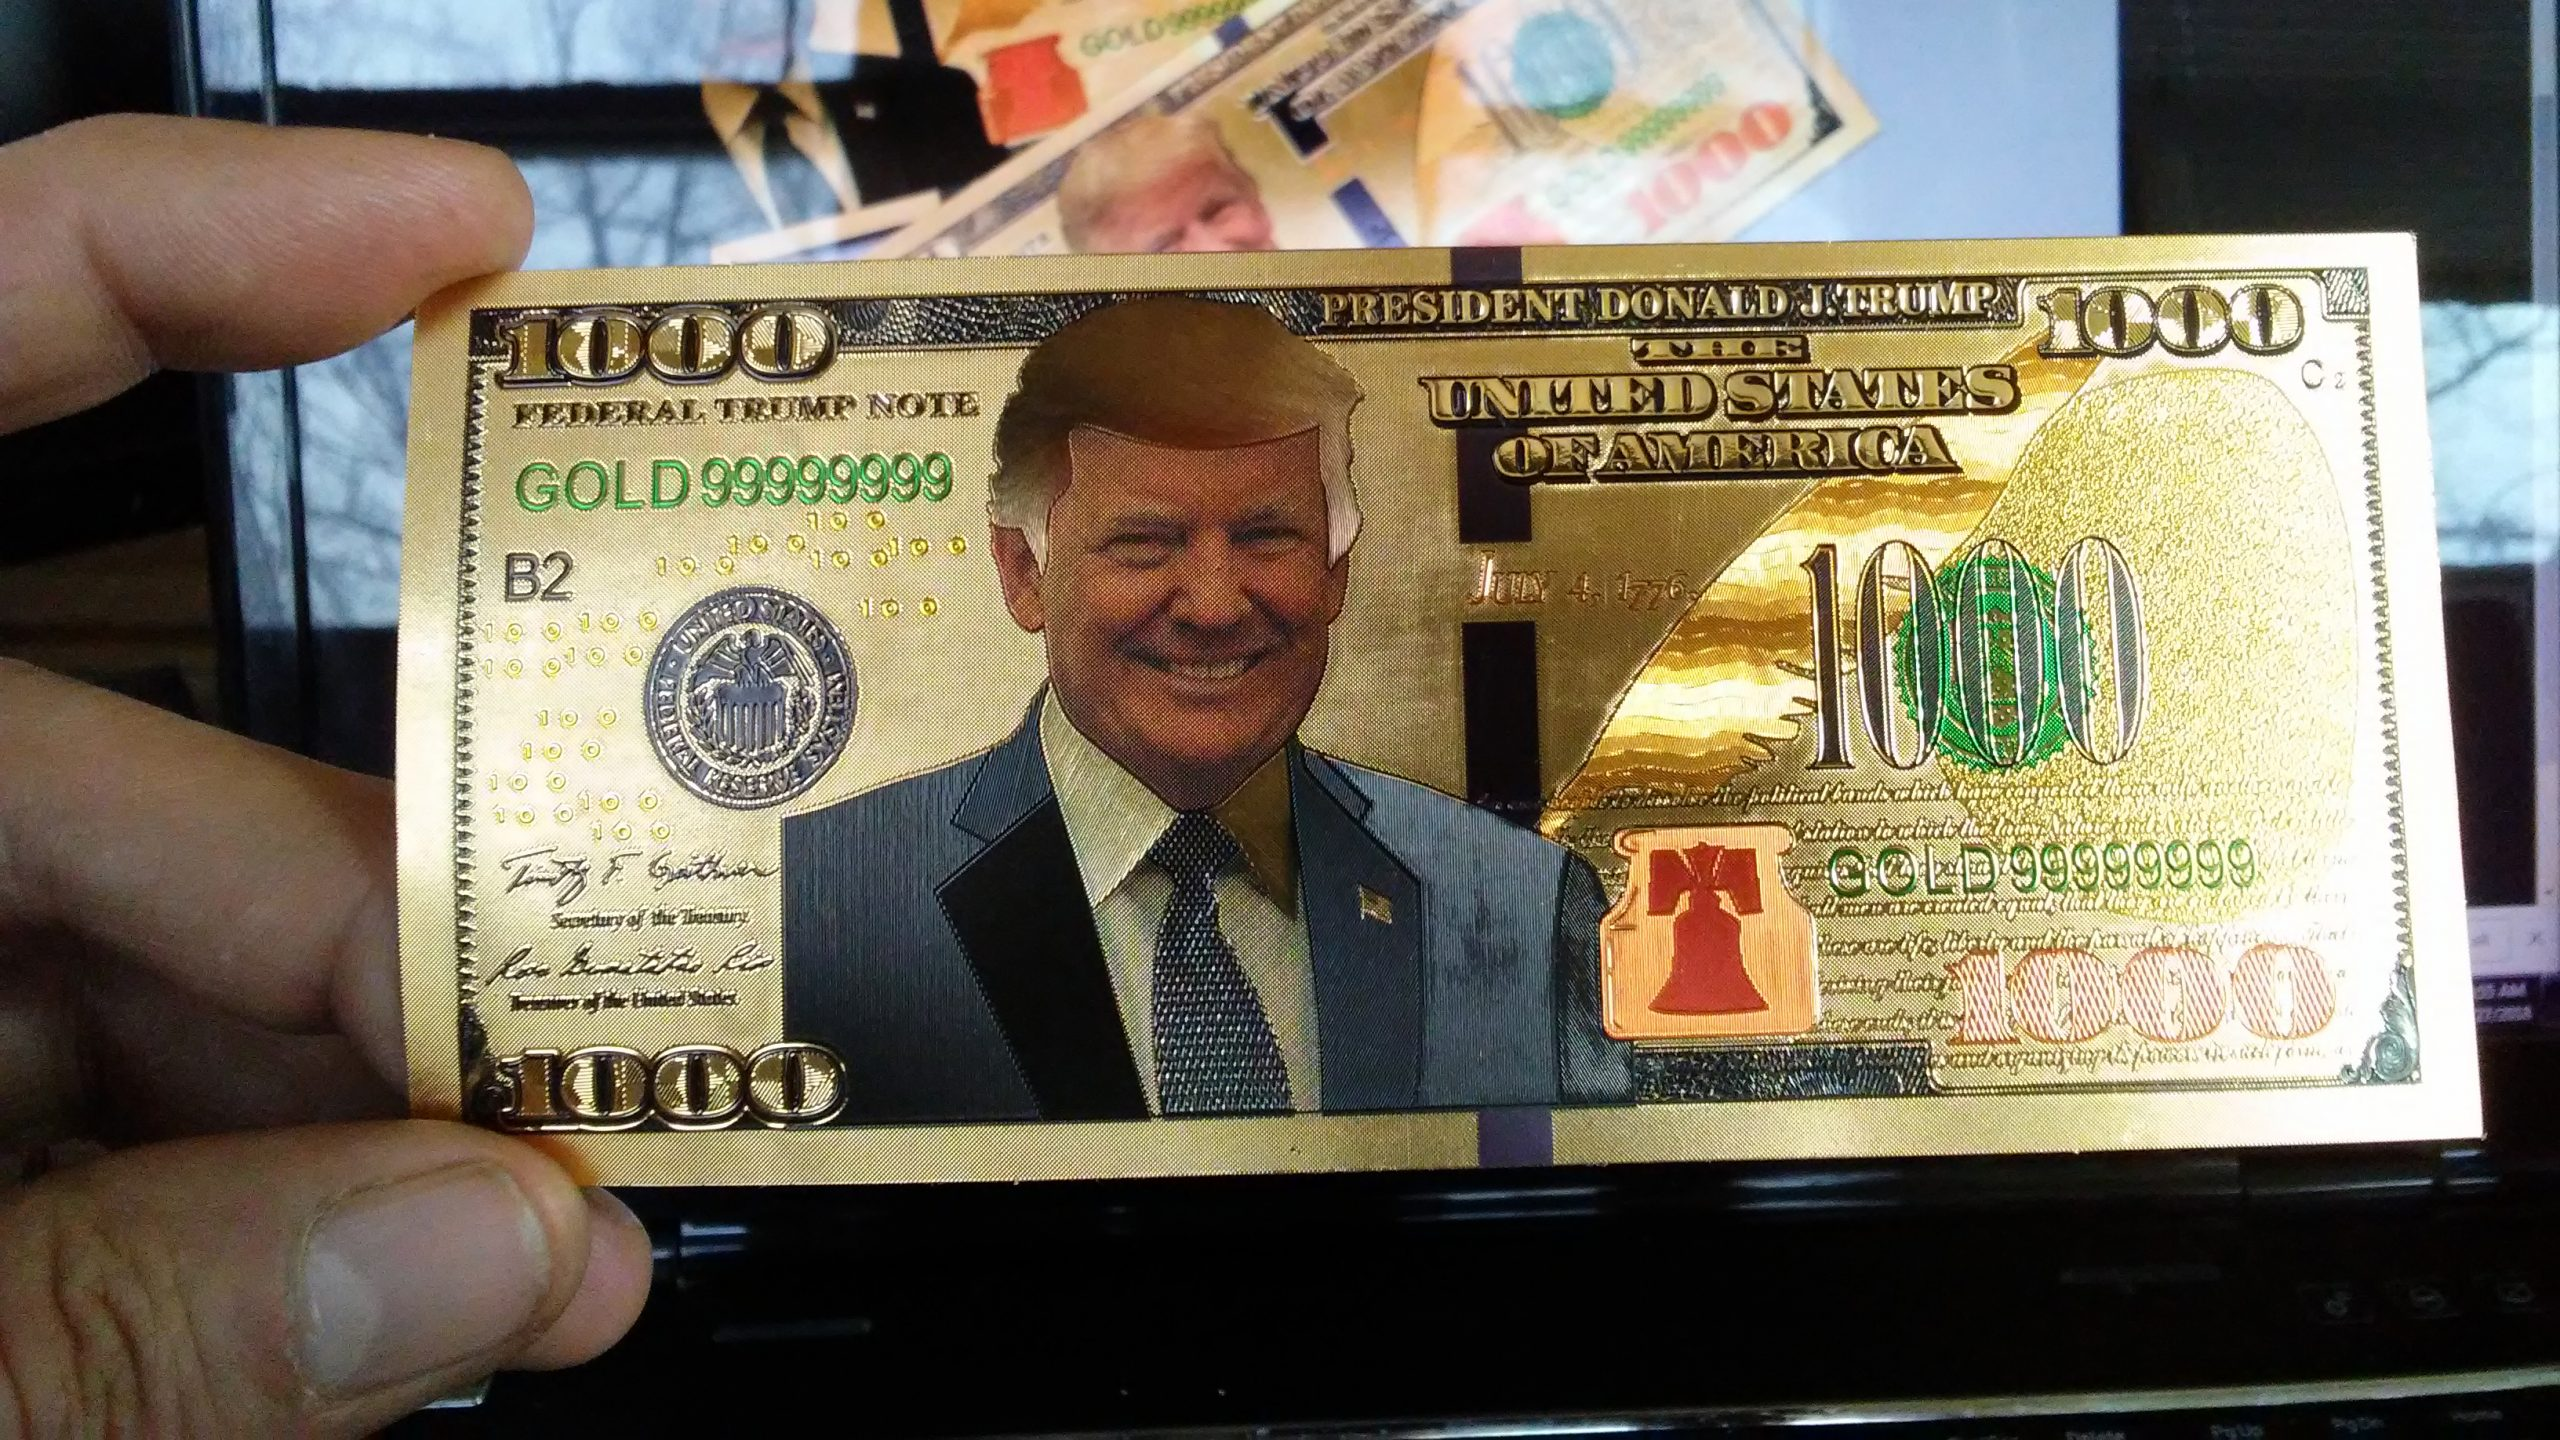 $1,000 DENOMINATION 24K GOLD 'TRUMP 2020' BANK NOTES w/ 24K Gold Certificate Of Authenticity Sleeve